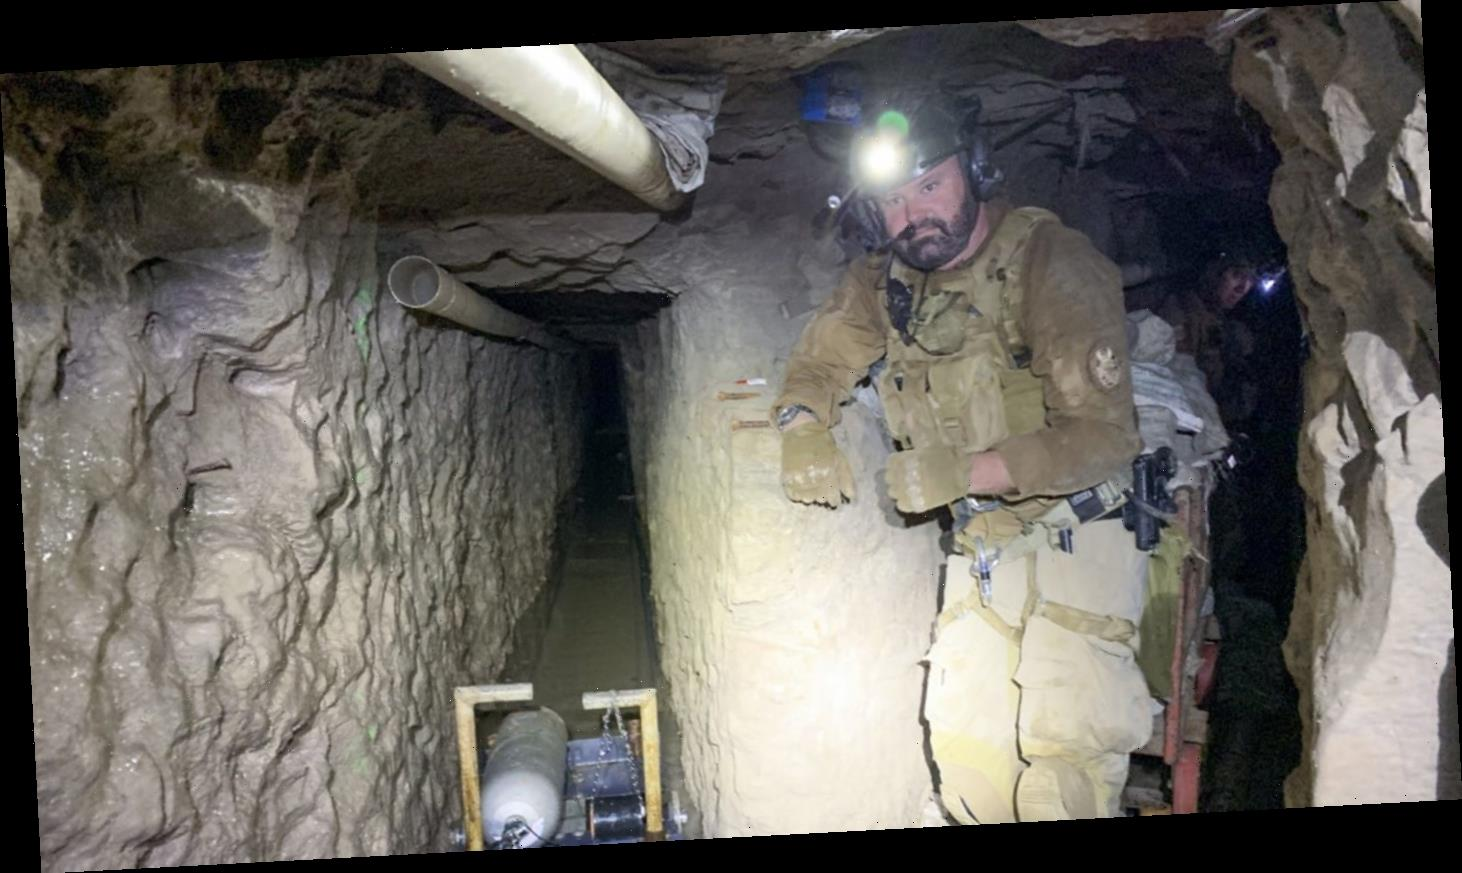 4,309-foot-long tunnel in San Diego is longest ever discovered along Southwest border